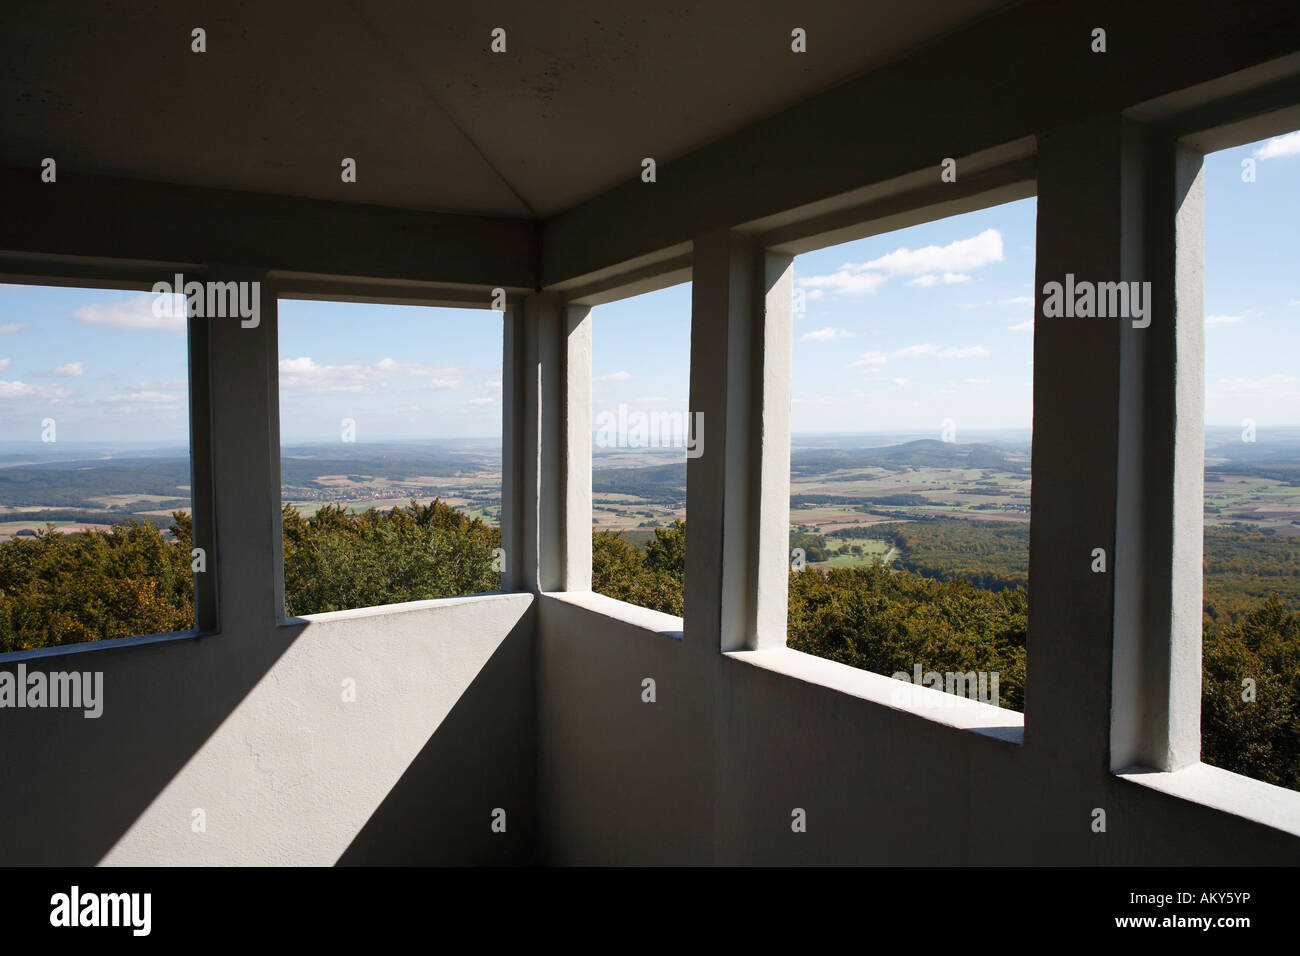 Look-out Rother Kuppe, Rhoen-Park-Hotel, Rhoen, Franconia, Germany - Stock Image